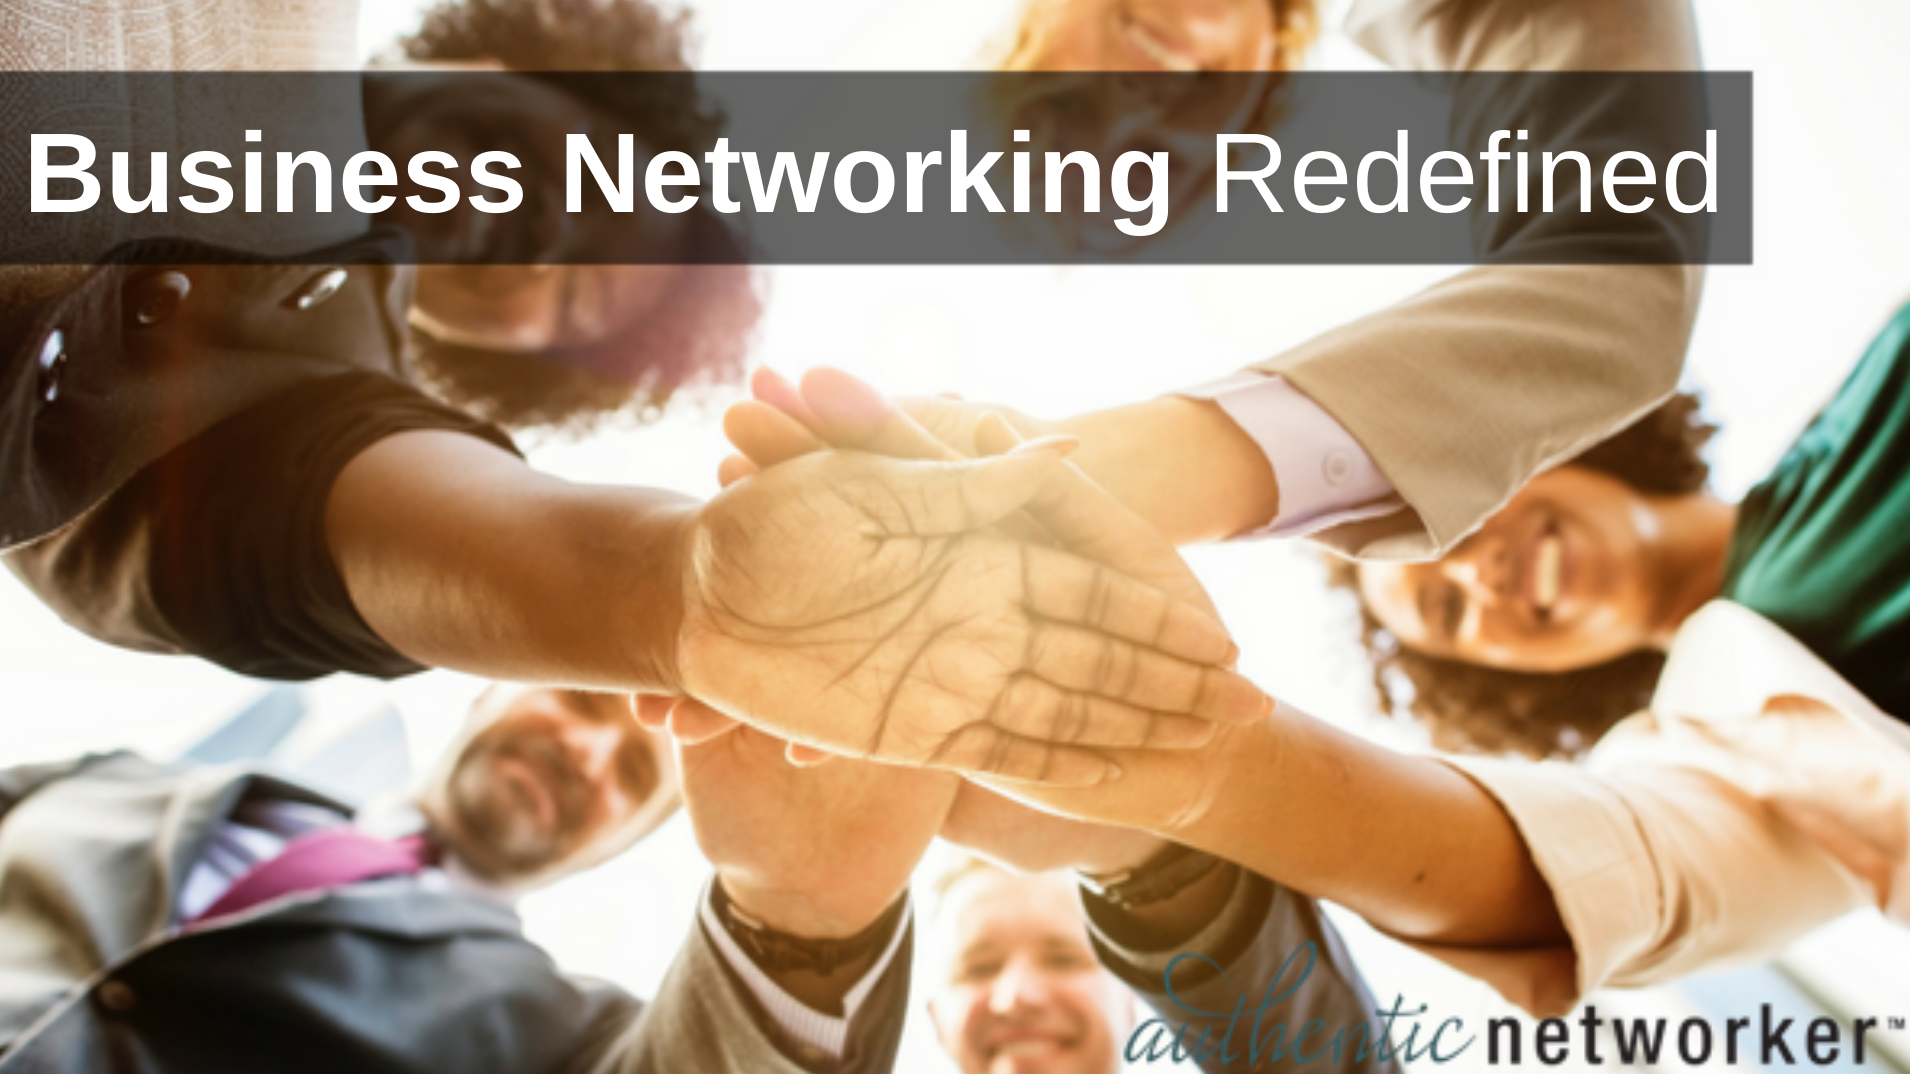 Business Networking Redefined (The Bronx)